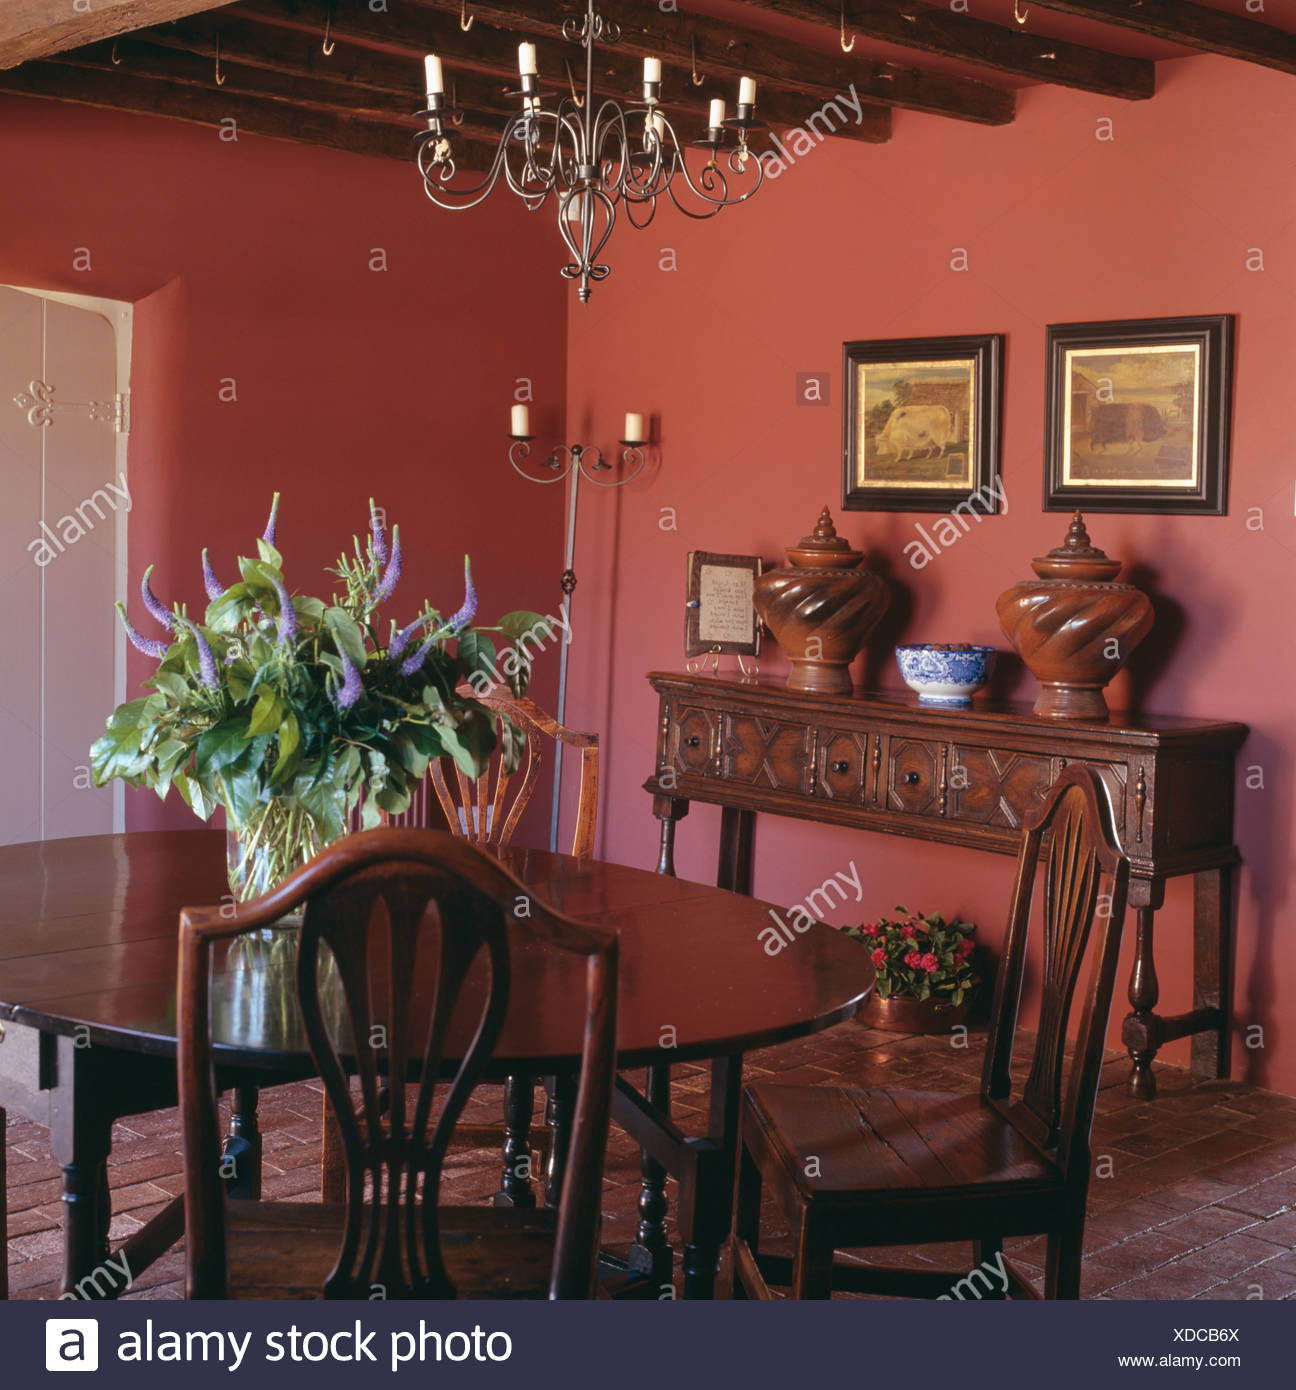 Metal chandelier above antique oak table and chairs in deep pink country  dining room painted with Farrow+Ball paint - Metal Chandelier Above Antique Oak Table And Chairs In Deep Pink